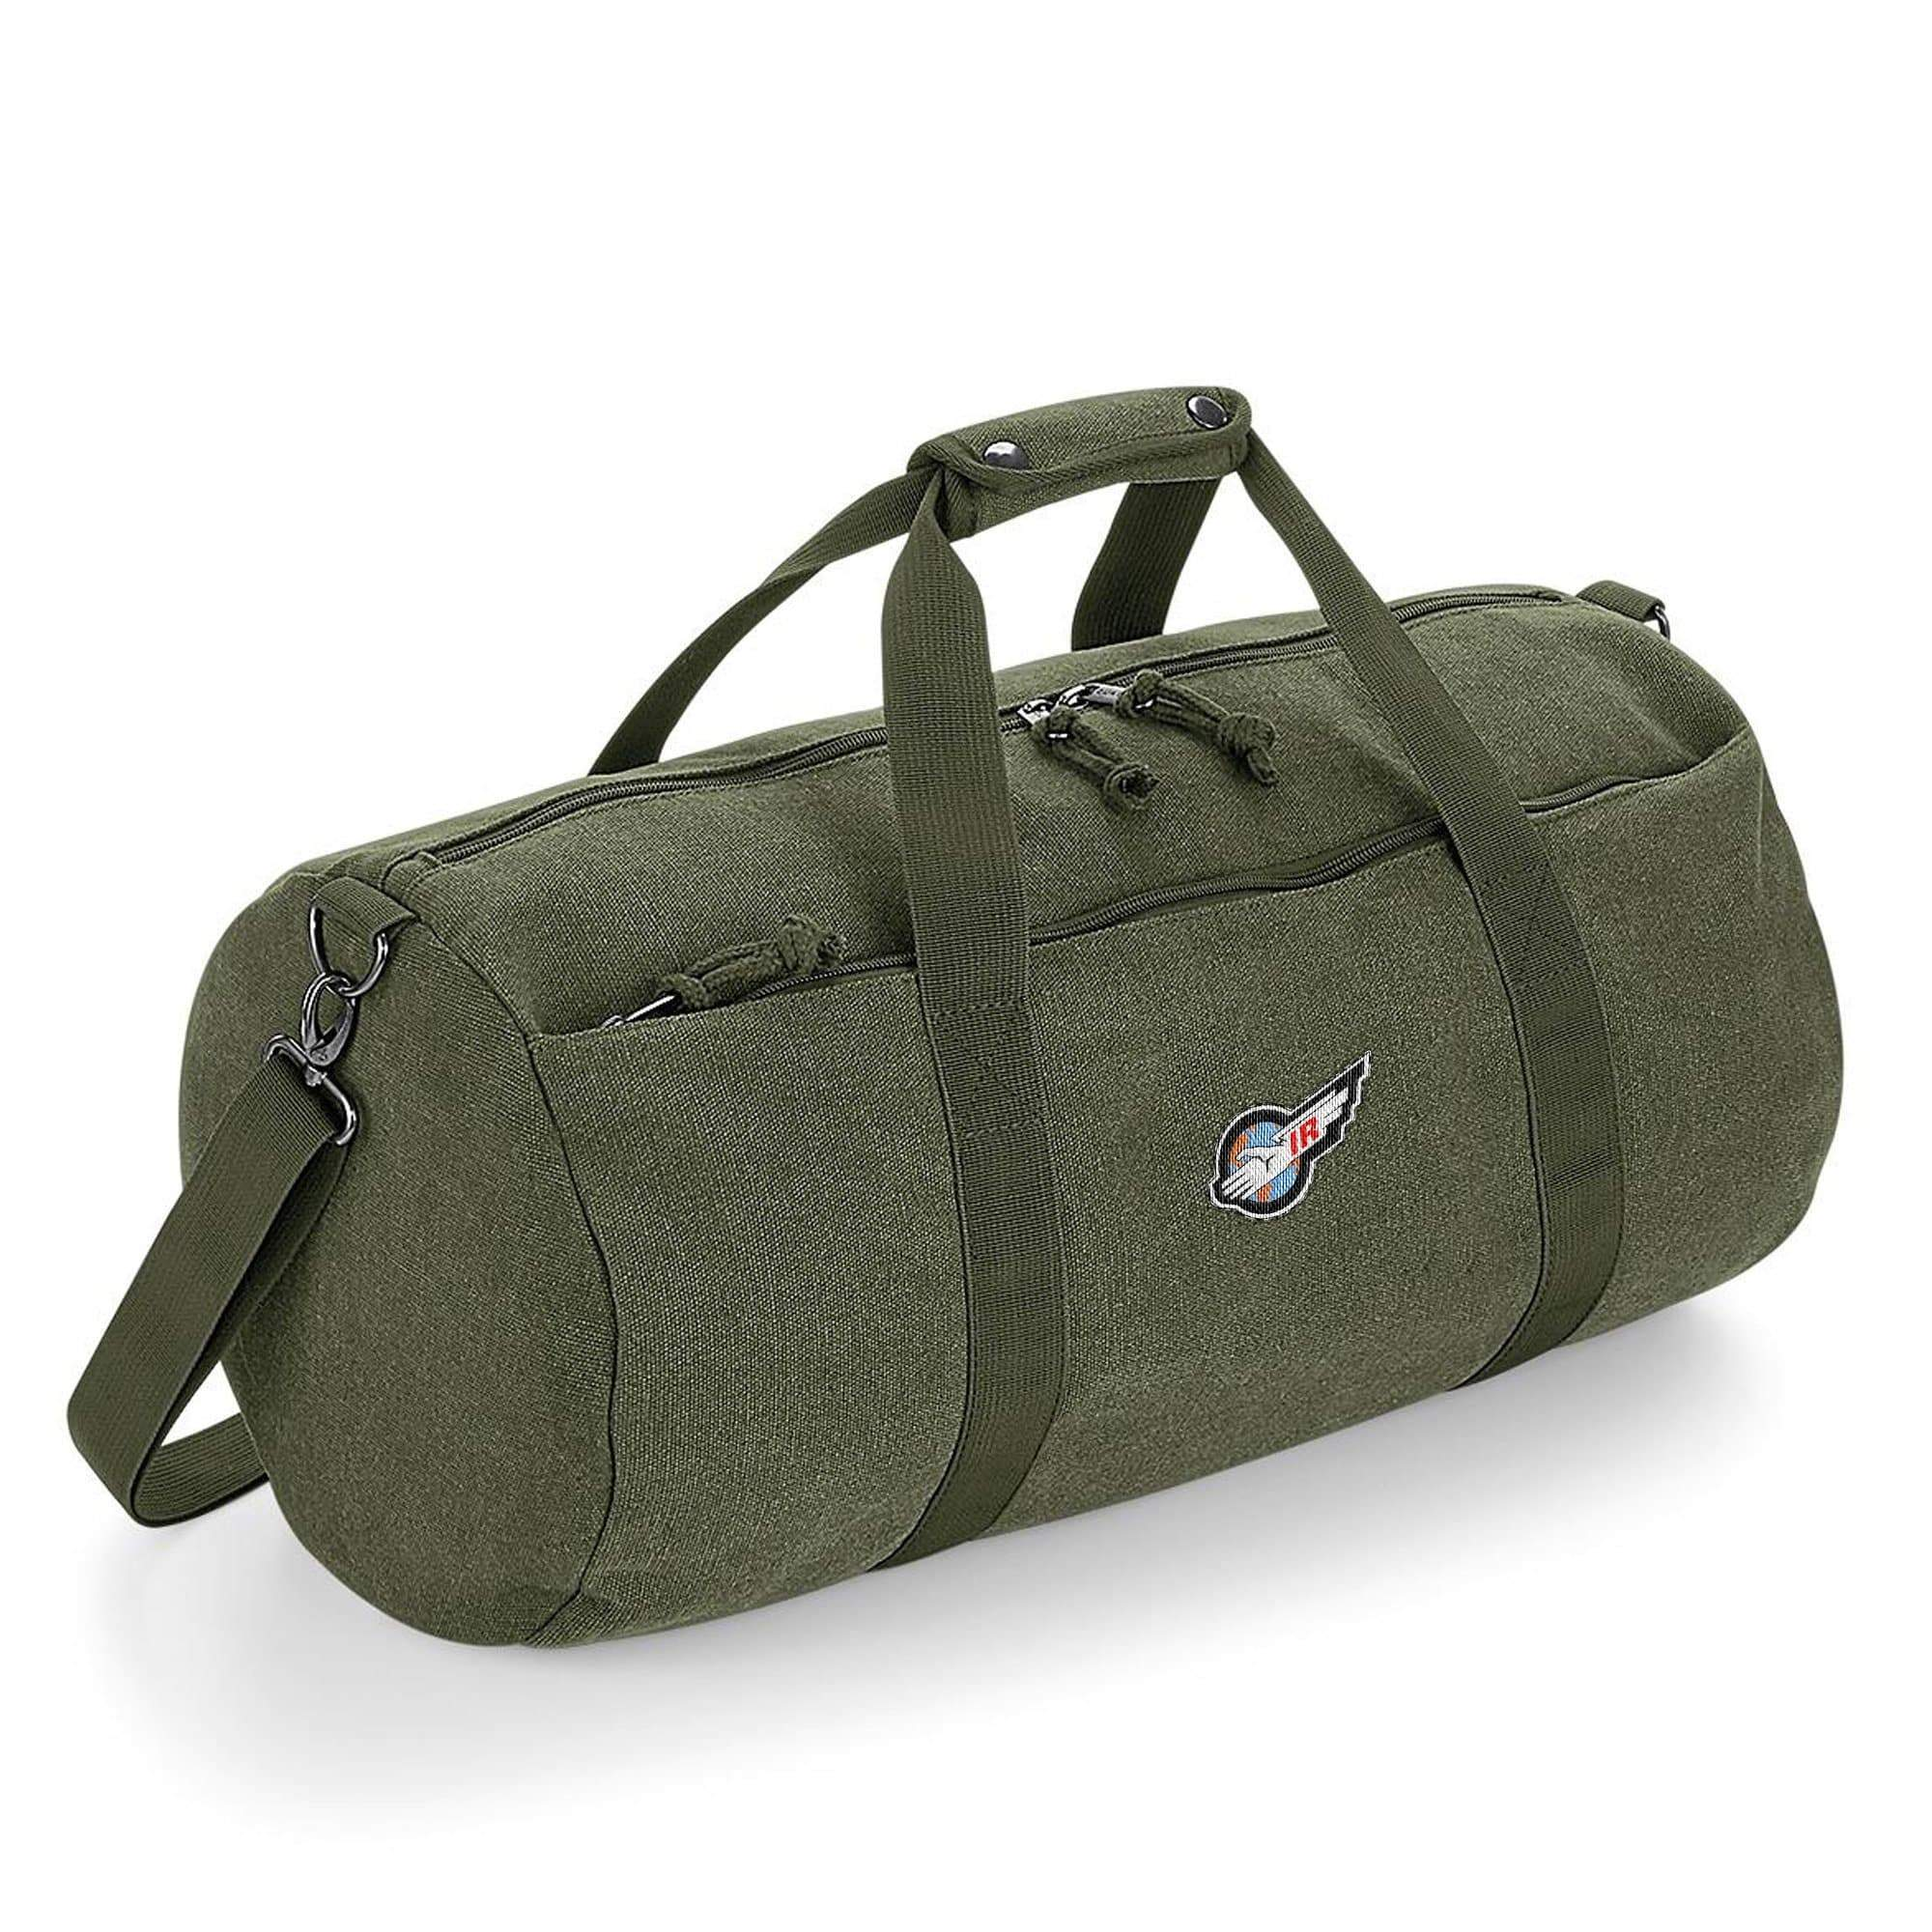 International Rescue/Thunderbirds Barrel Bag [Official & Exclusive] - The Gerry Anderson Store